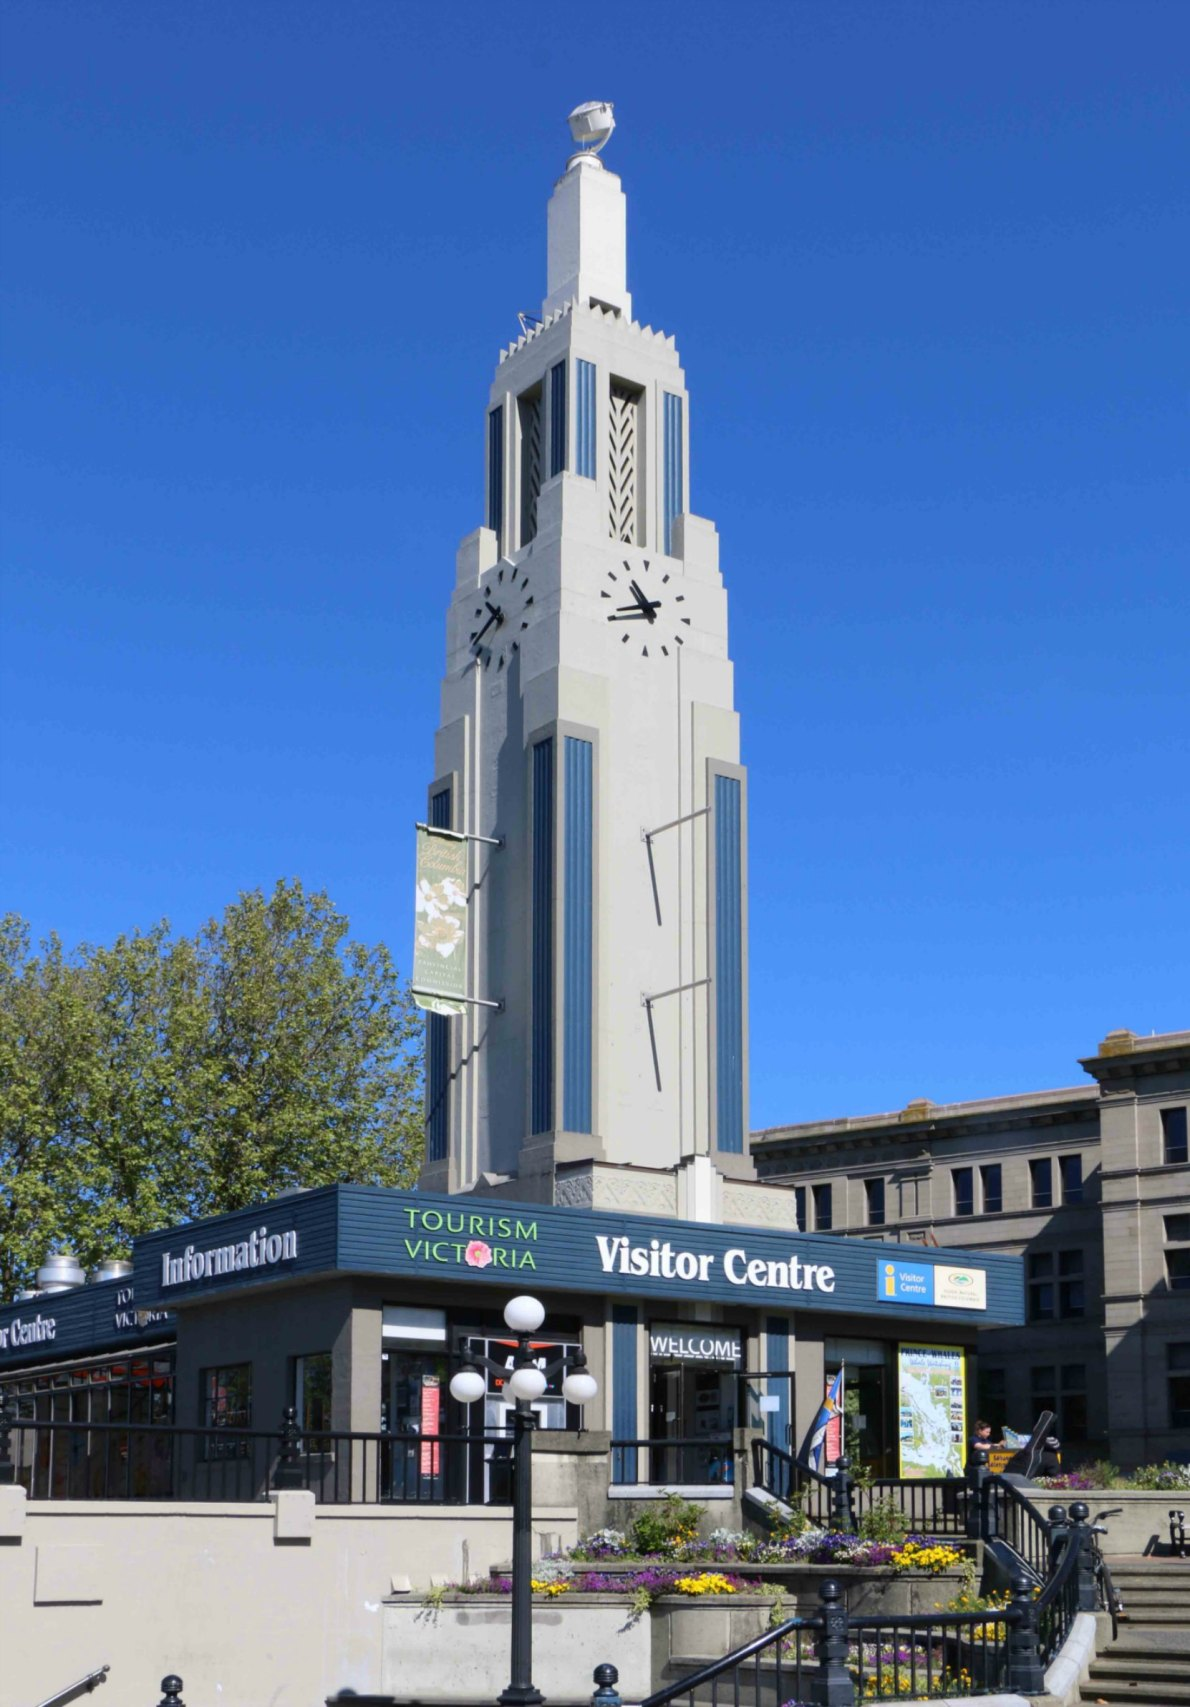 The Tourism Victoria Visitor Centre, 812 Wharf Street. This Art Deco building was originally built in 1931 by Imperial Oil as a service station. The tower still features a Sperry searchlight intended as a navigation beacon for aircraft.